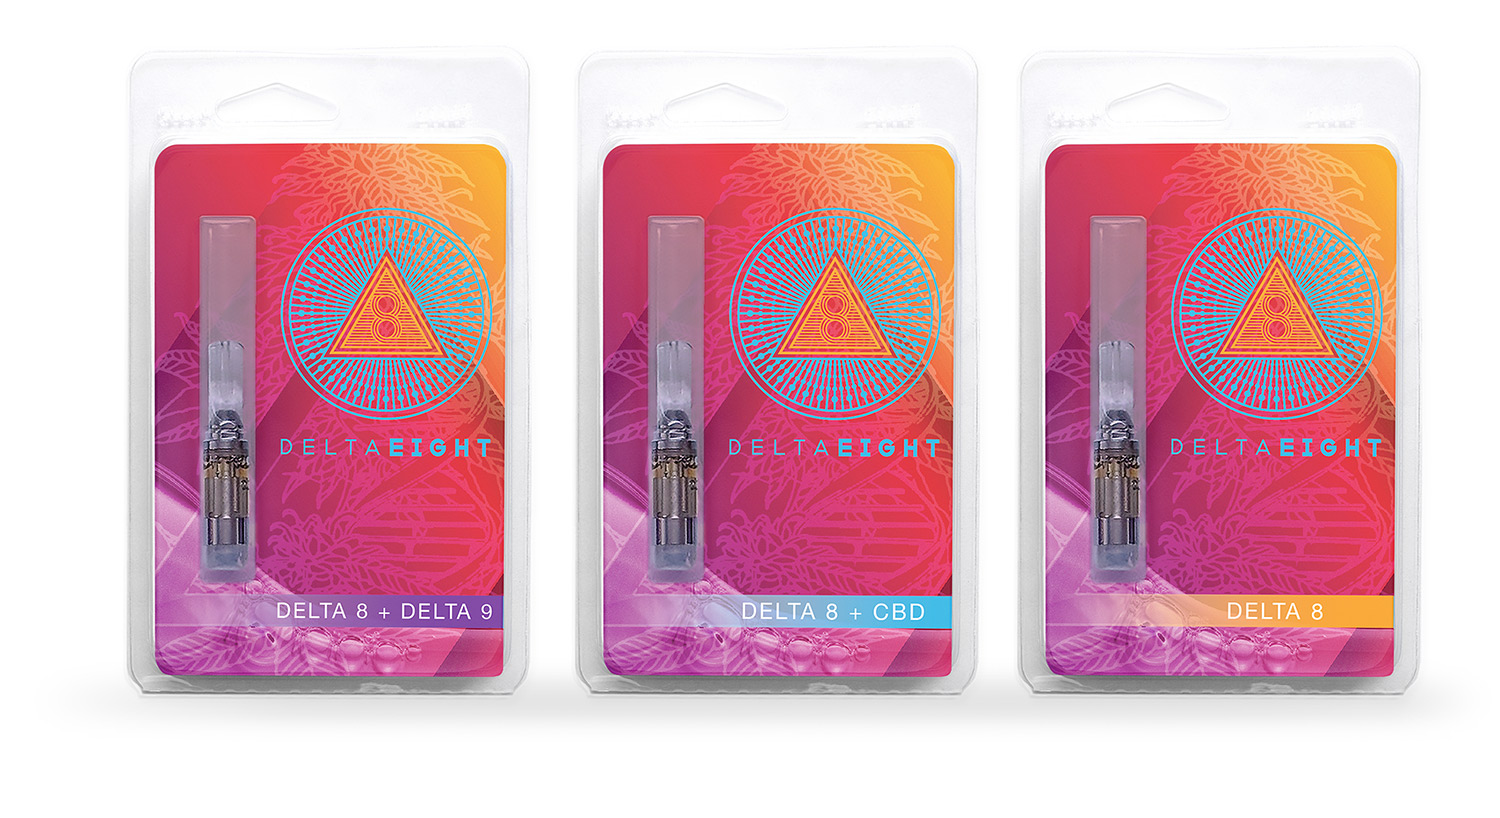 Delta 8 Packaging